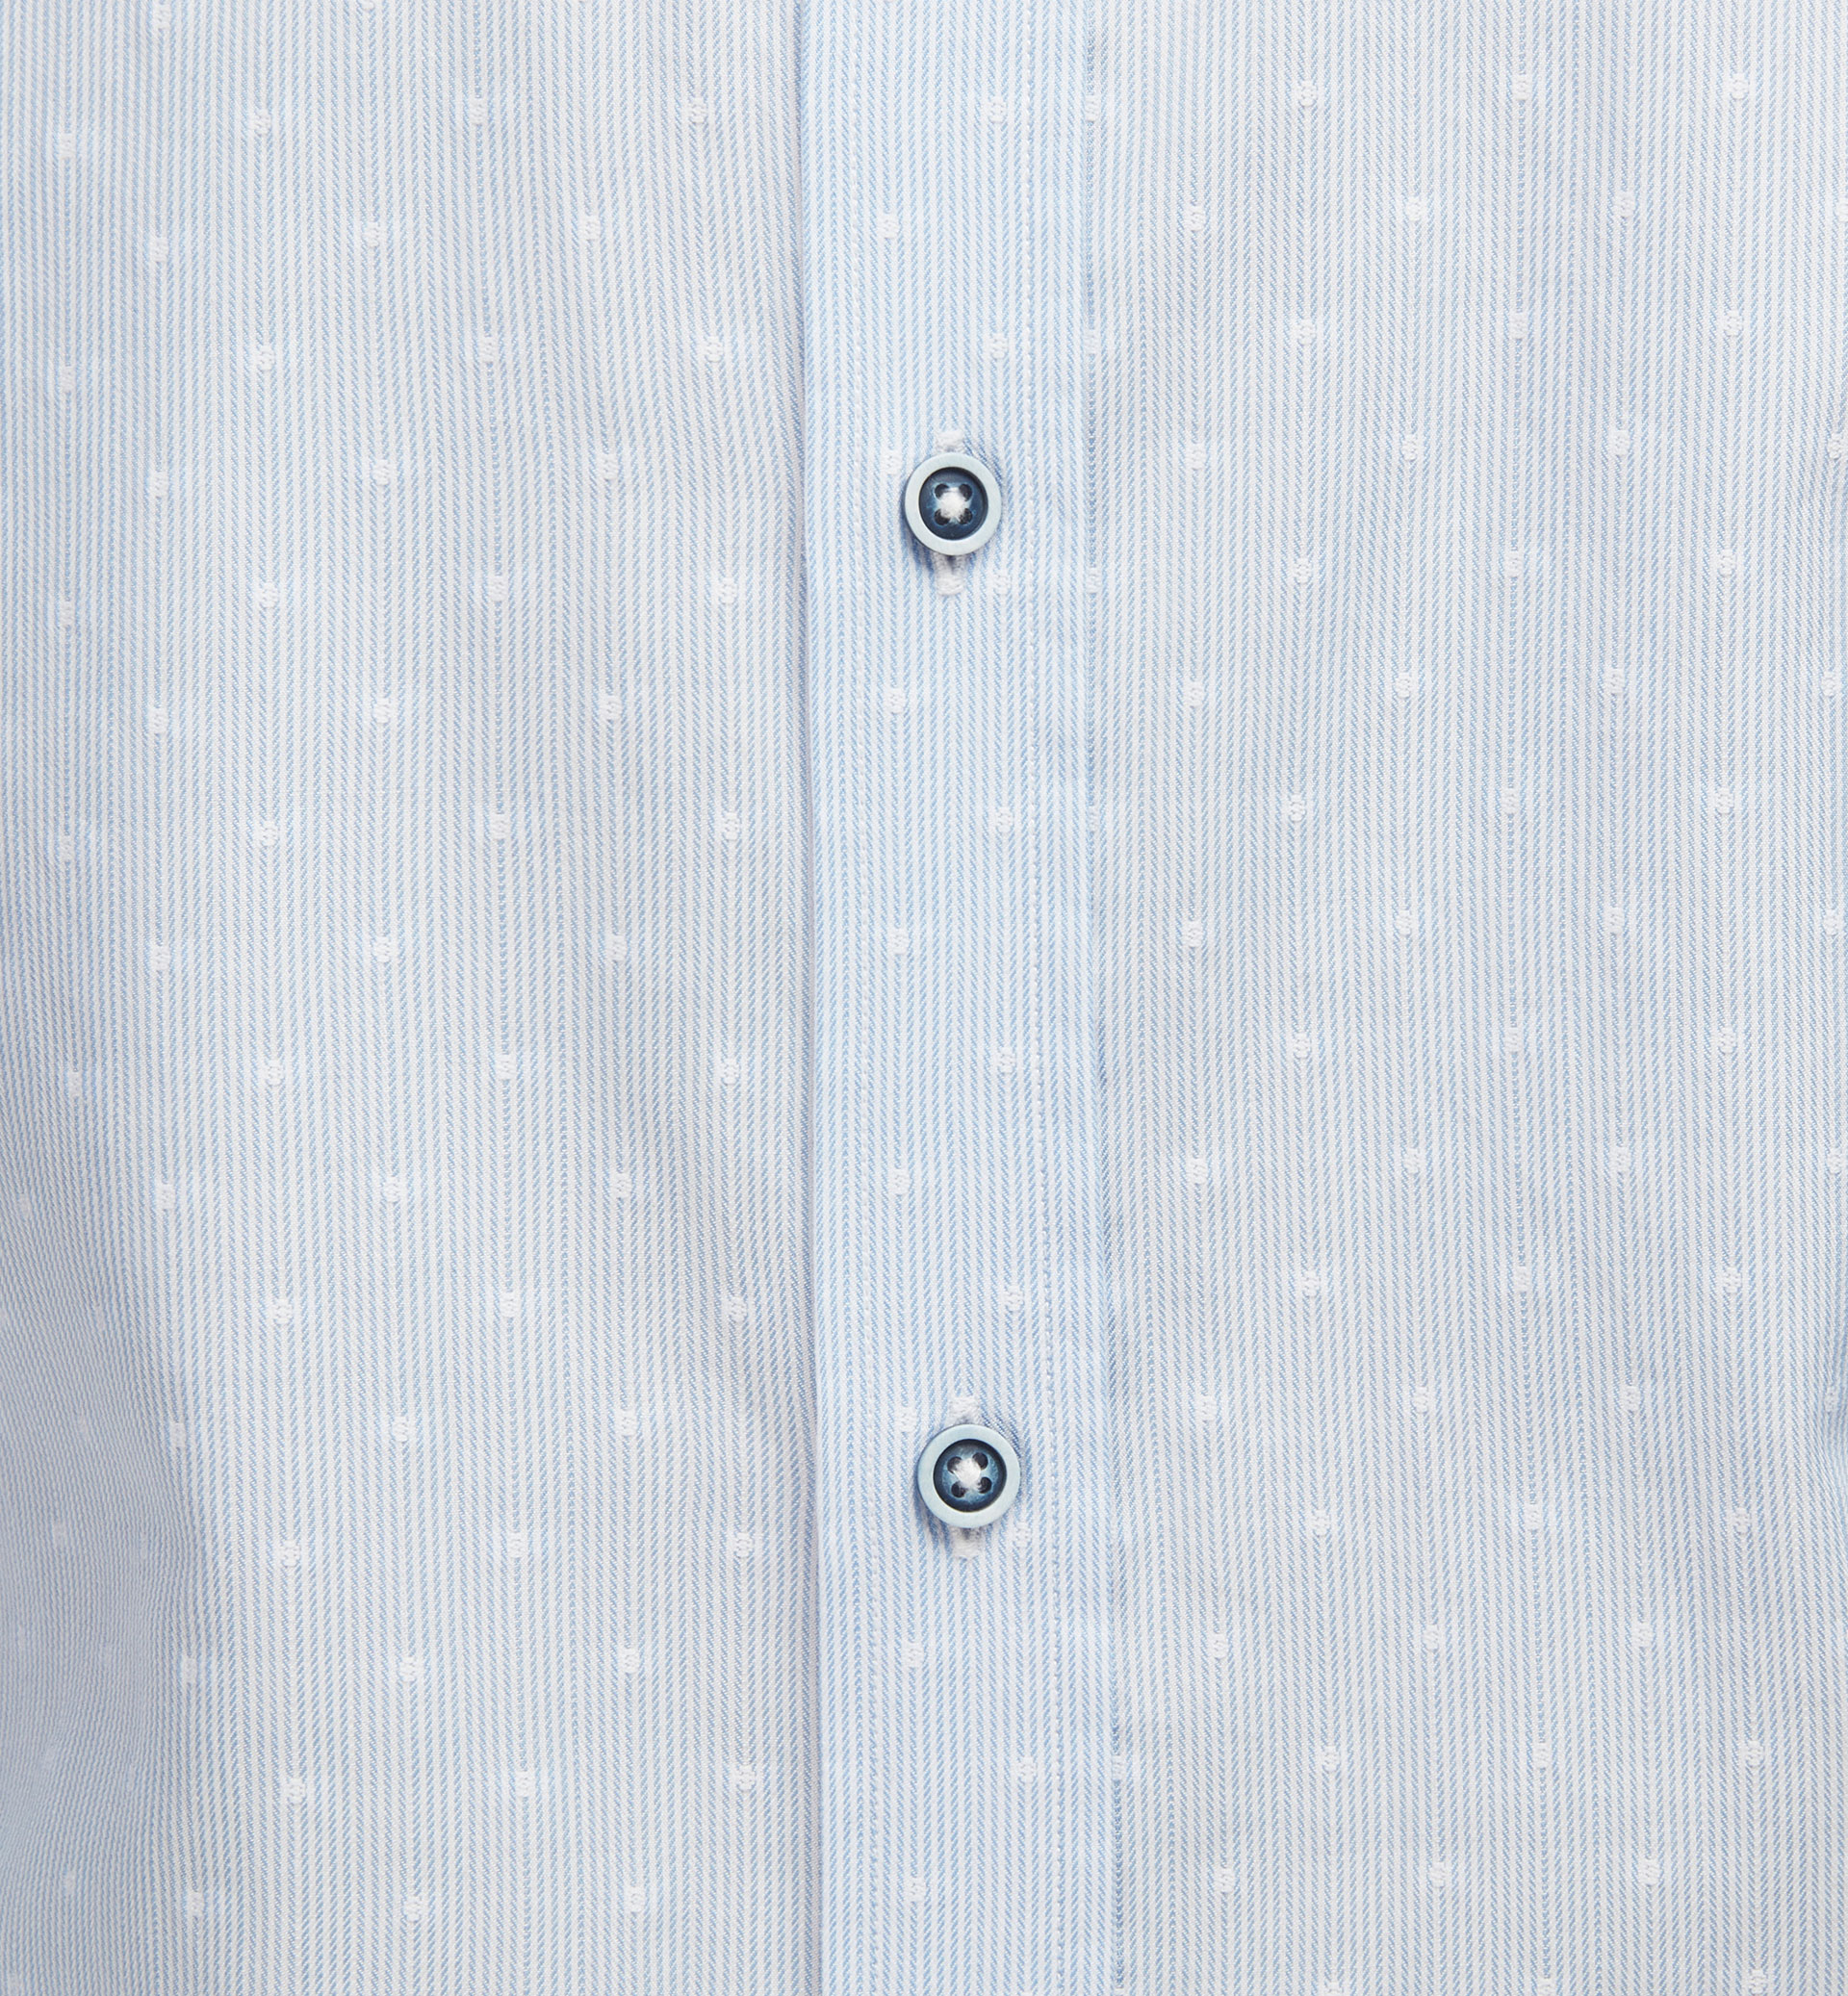 SLIM FIT FIL COUPÉ POLKA DOT AND STRIPE SHIRT